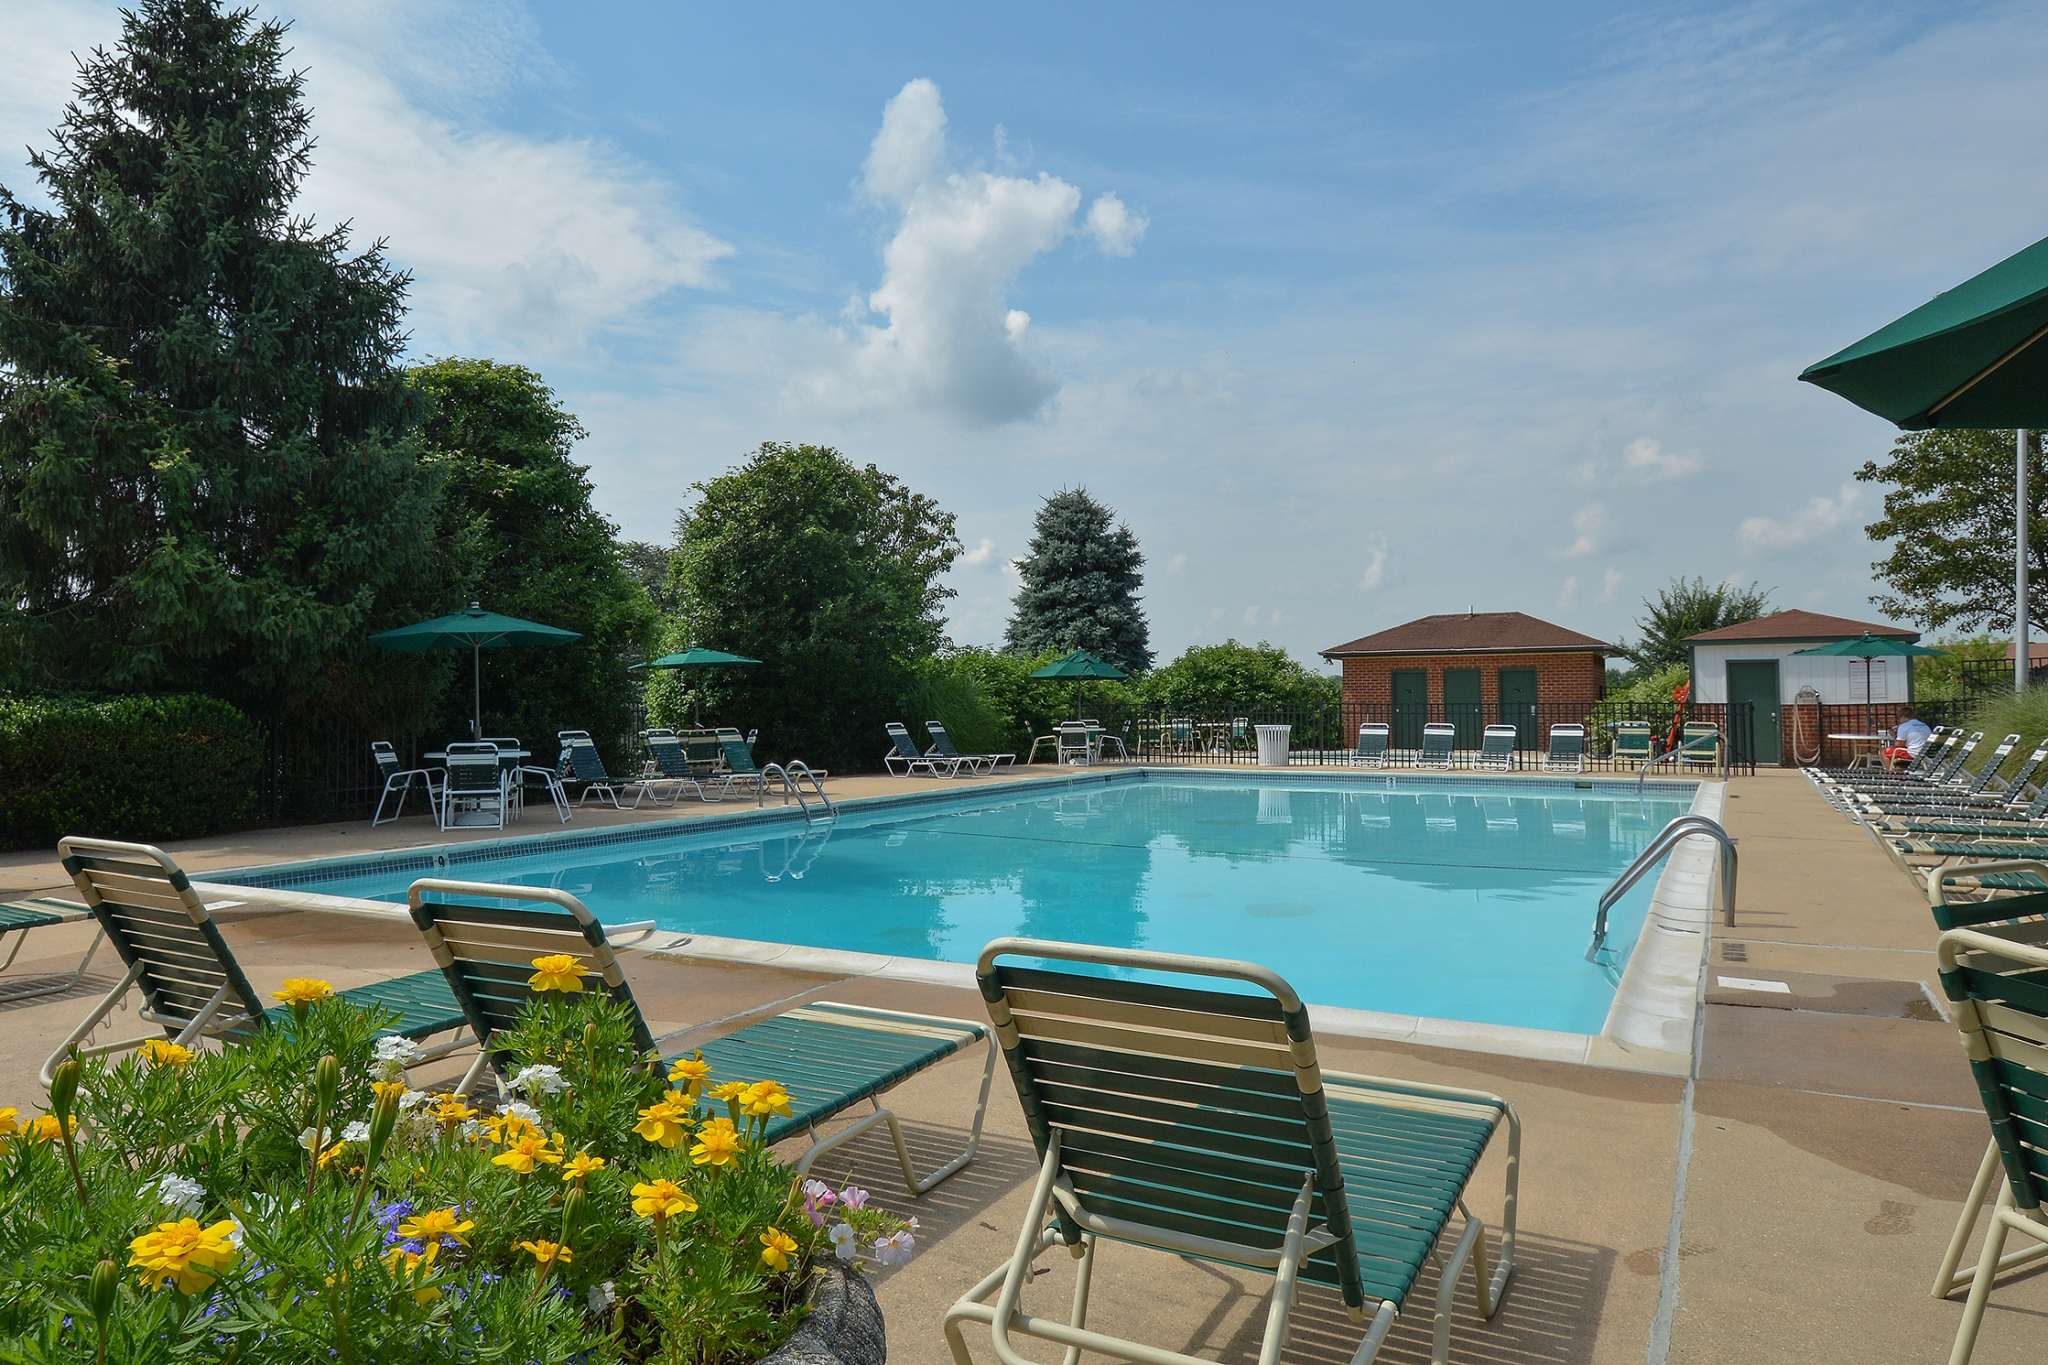 Fairway Park Swimming Pool with Chairs and Yellow Flowers | Apartments Near Wilmington DE